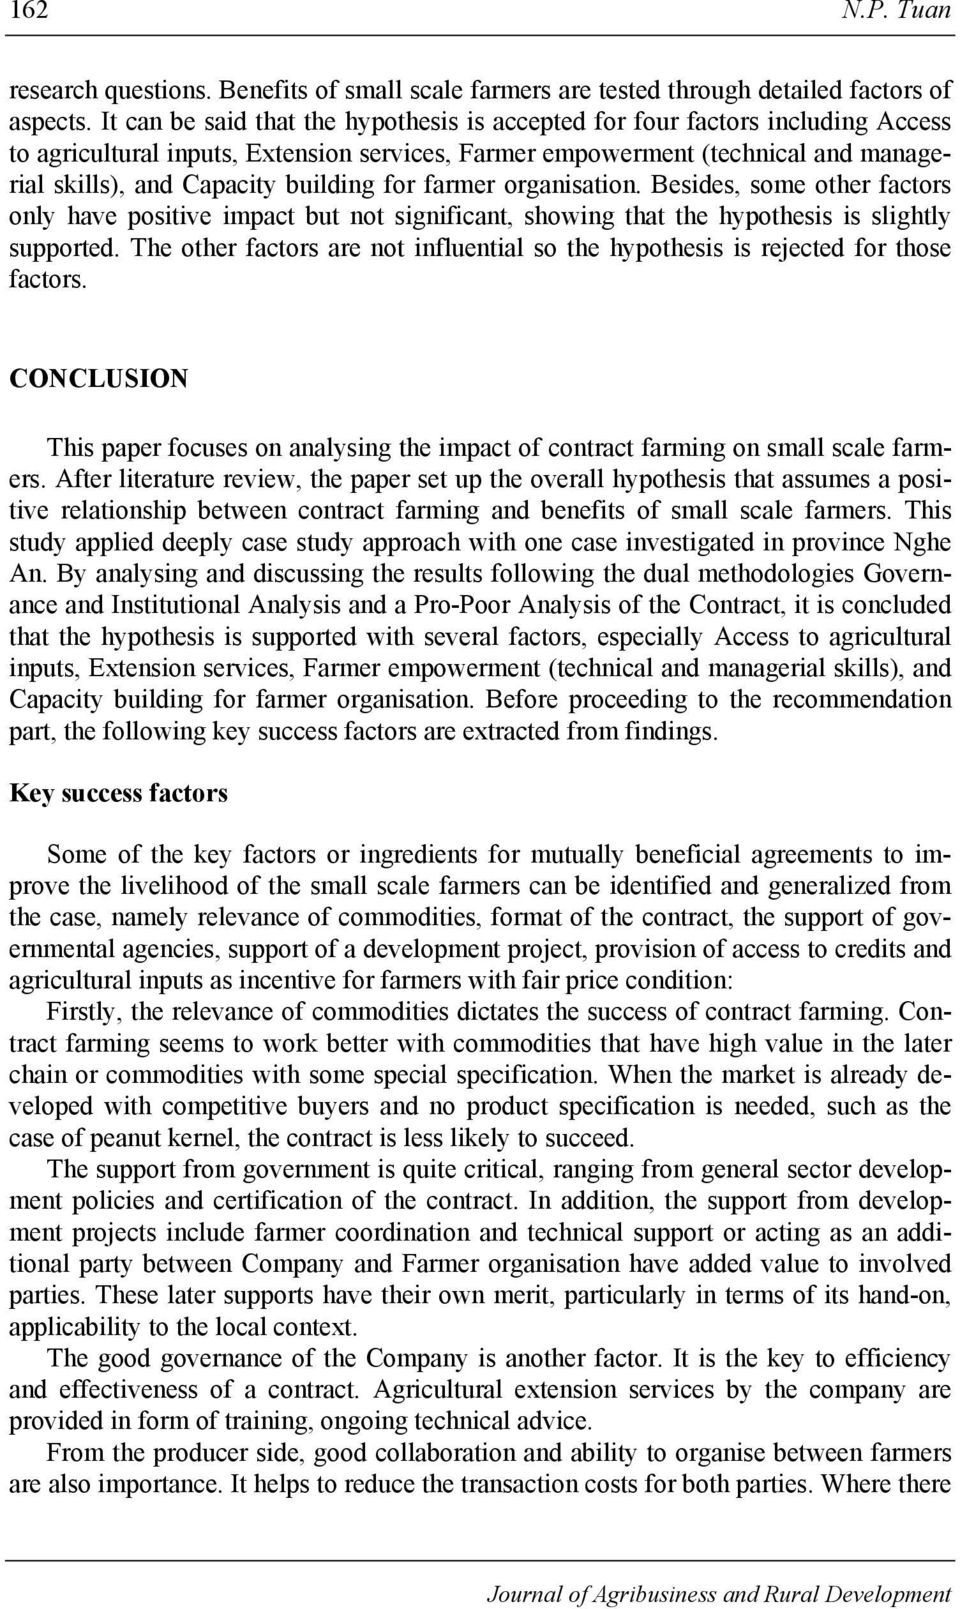 building for farmer organisation. Besides, some other factors only have positive impact but not significant, showing that the hypothesis is slightly supported.